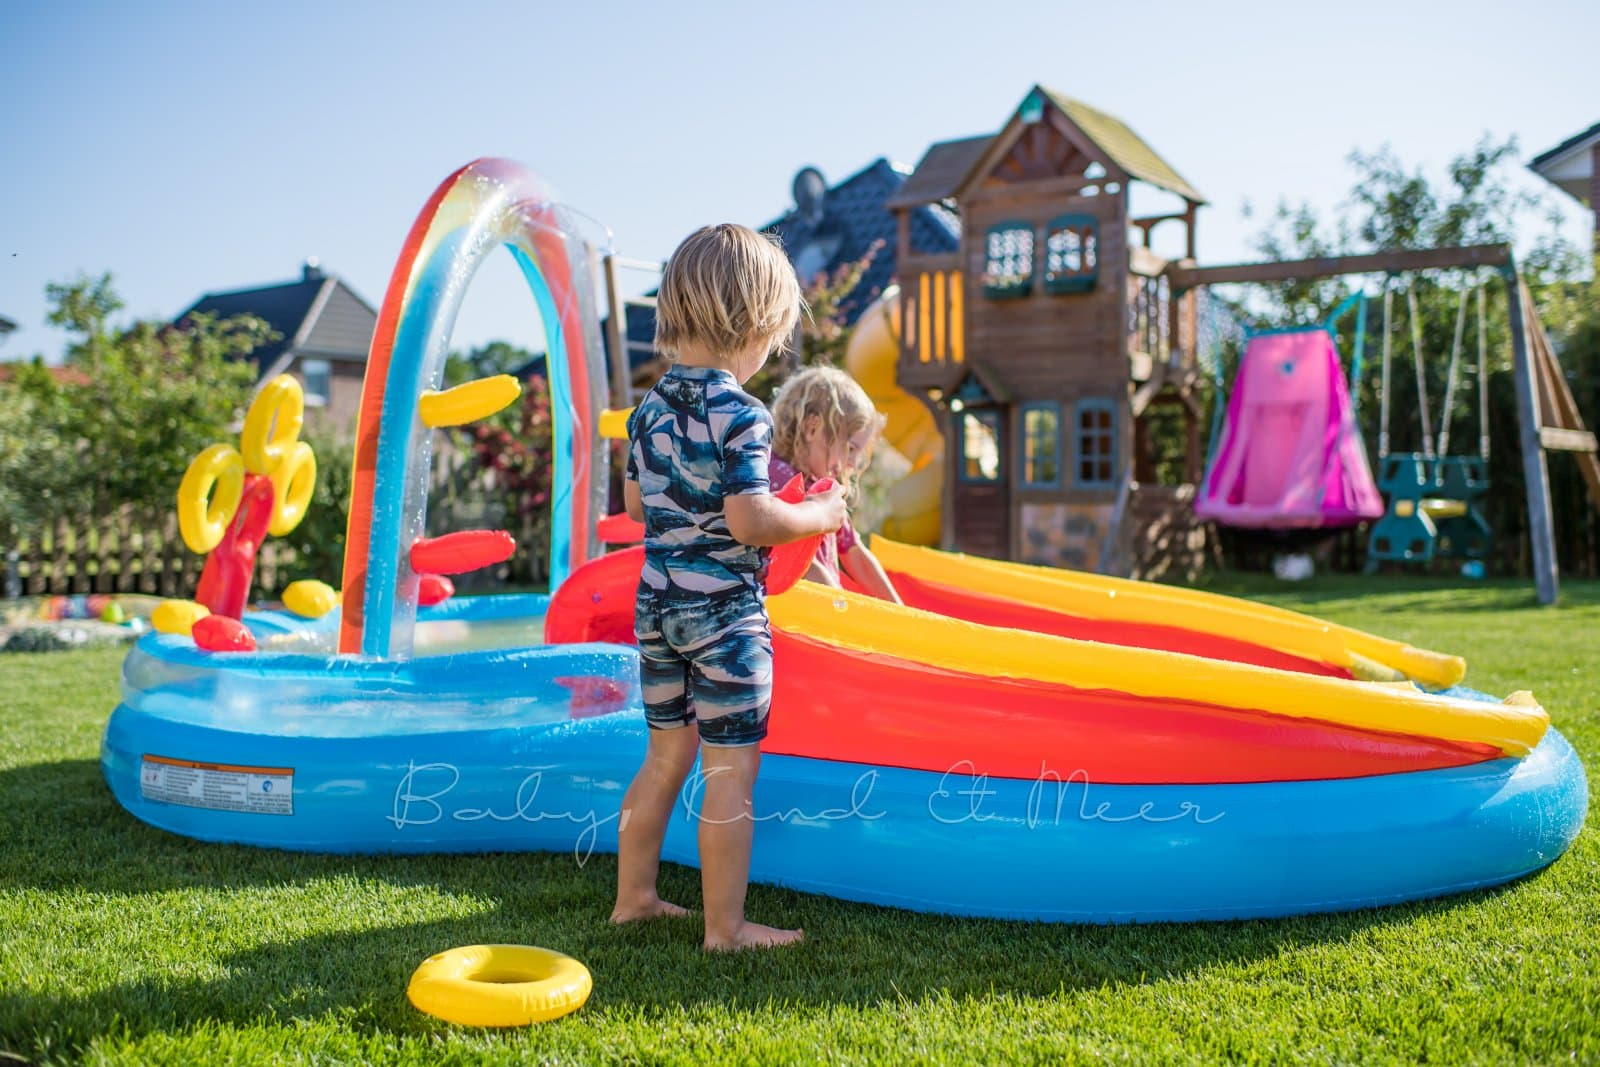 itkids Outdoor Spielzeuge 23